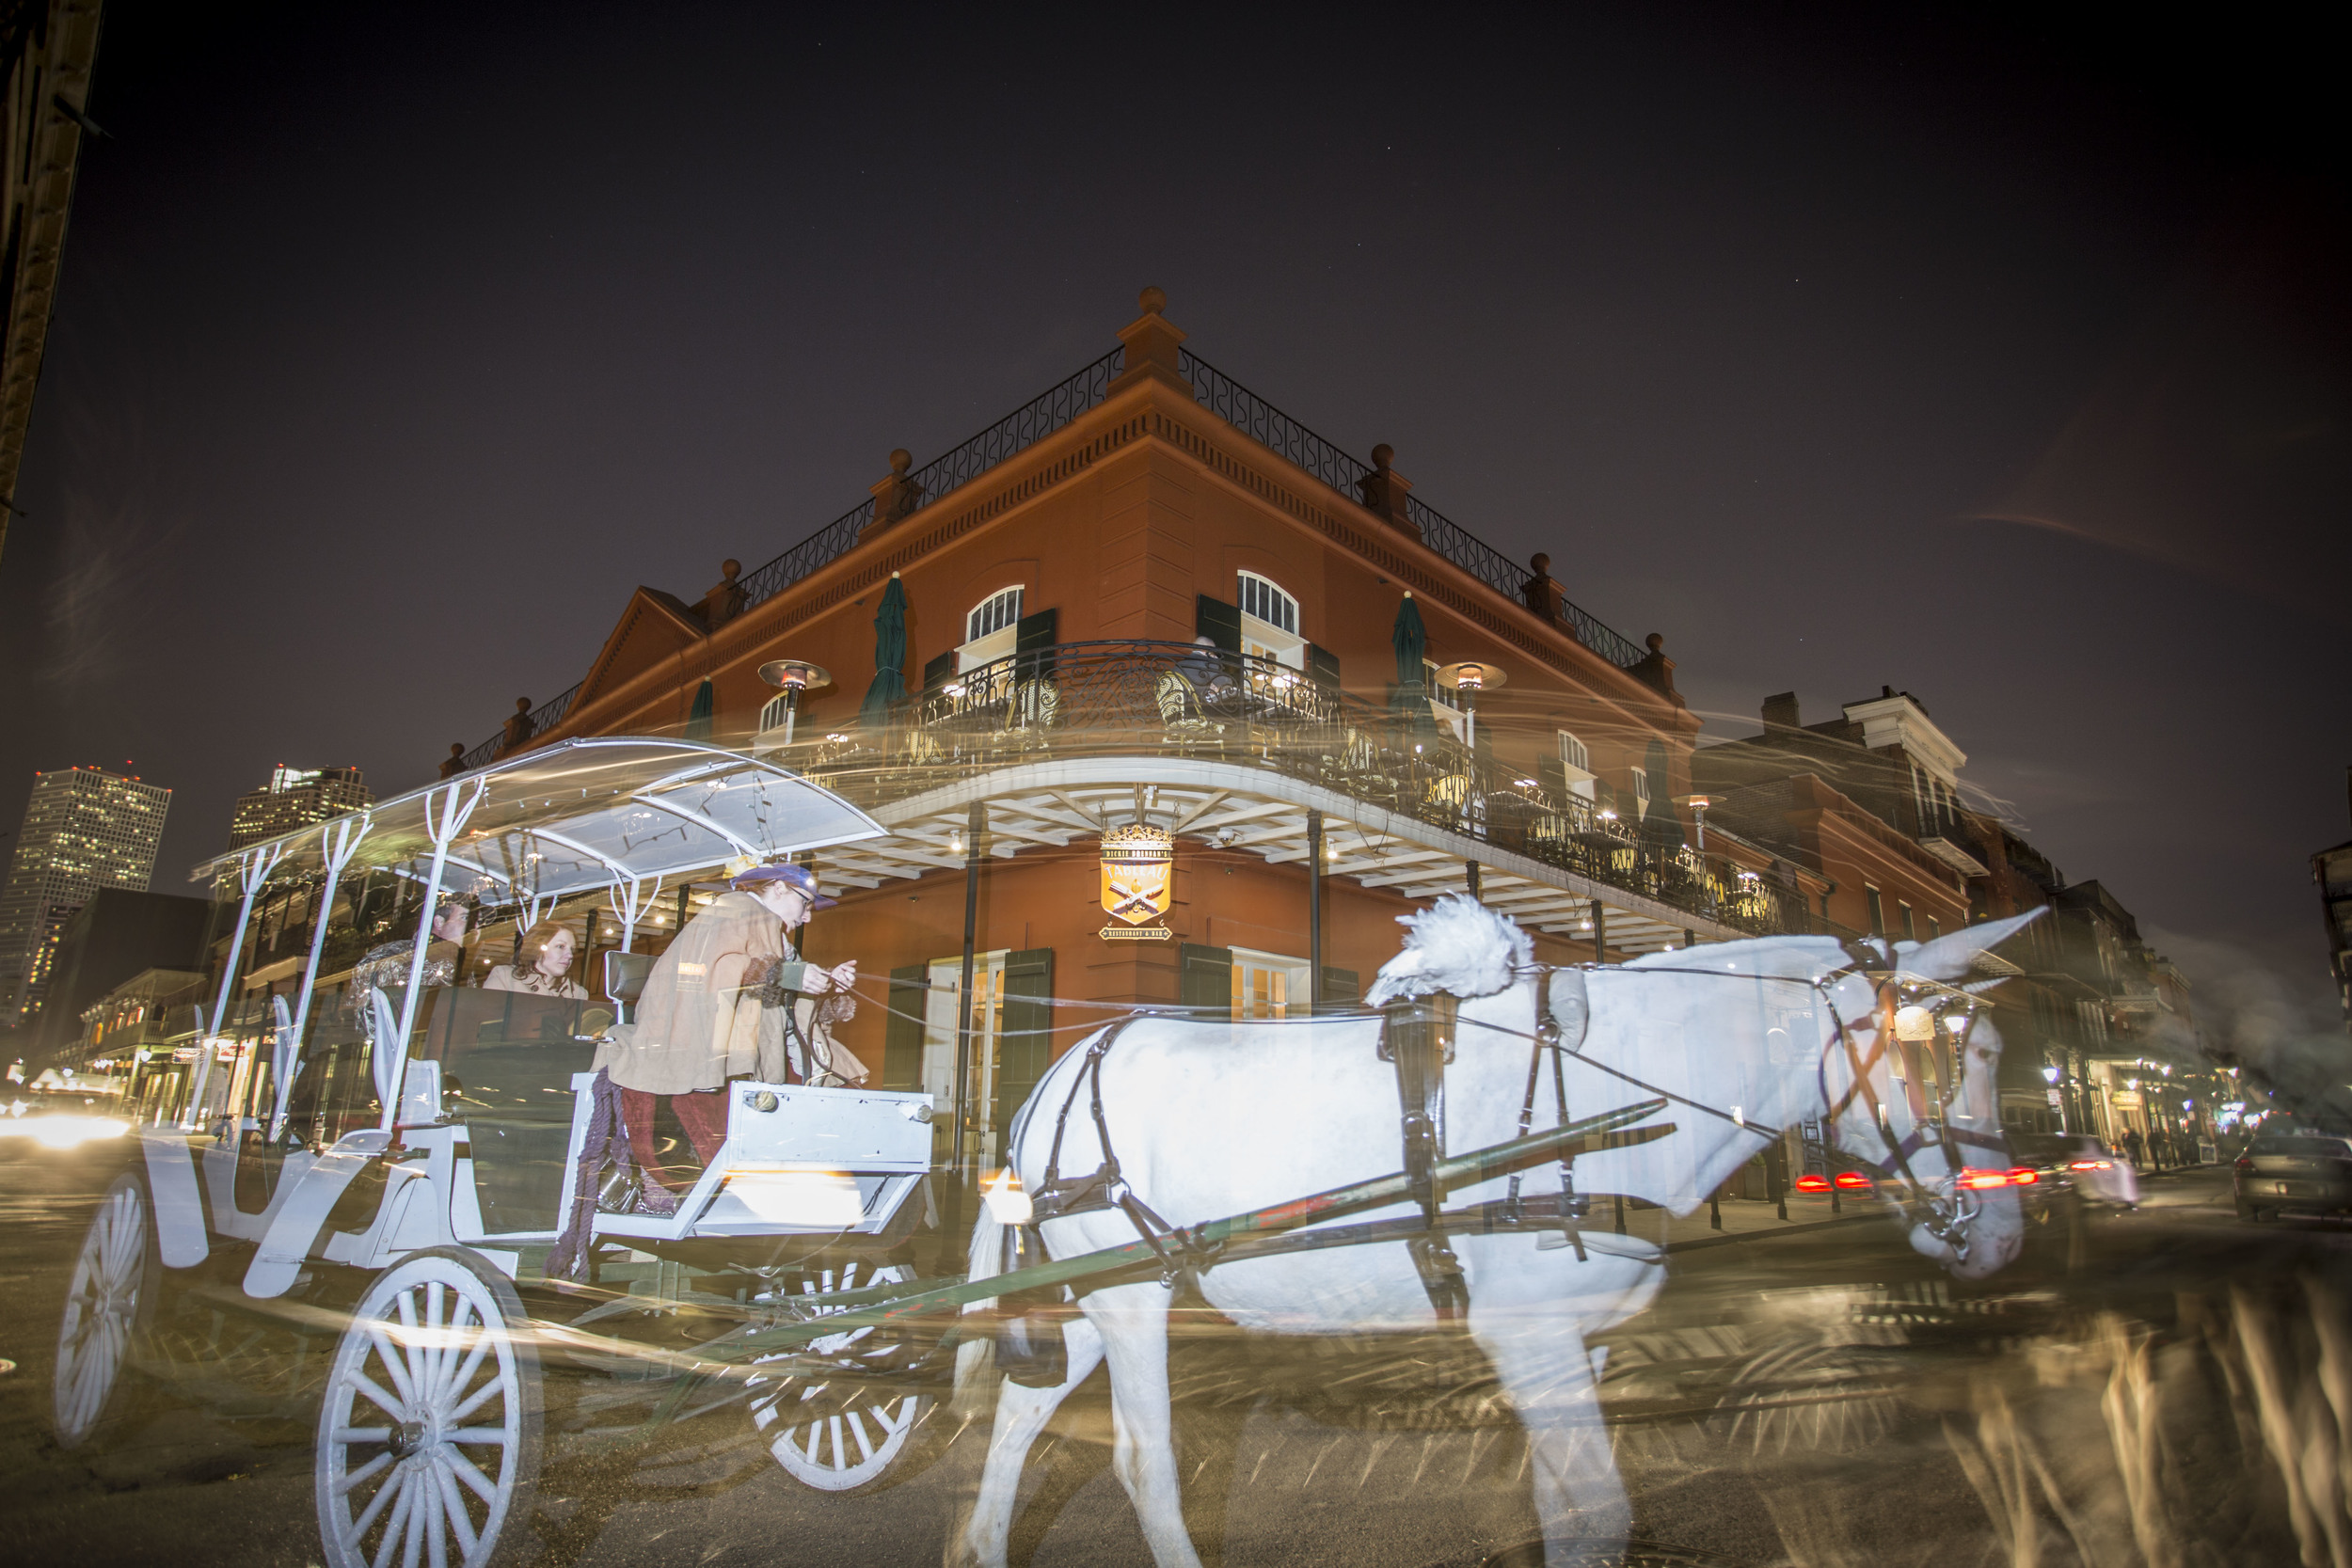 Zack-Smith-Photography-New-Orleans-How-to-tuesday-#27-Long-Exposure-Best-Night-Photography-Horse-Carriage-French-quarter-city